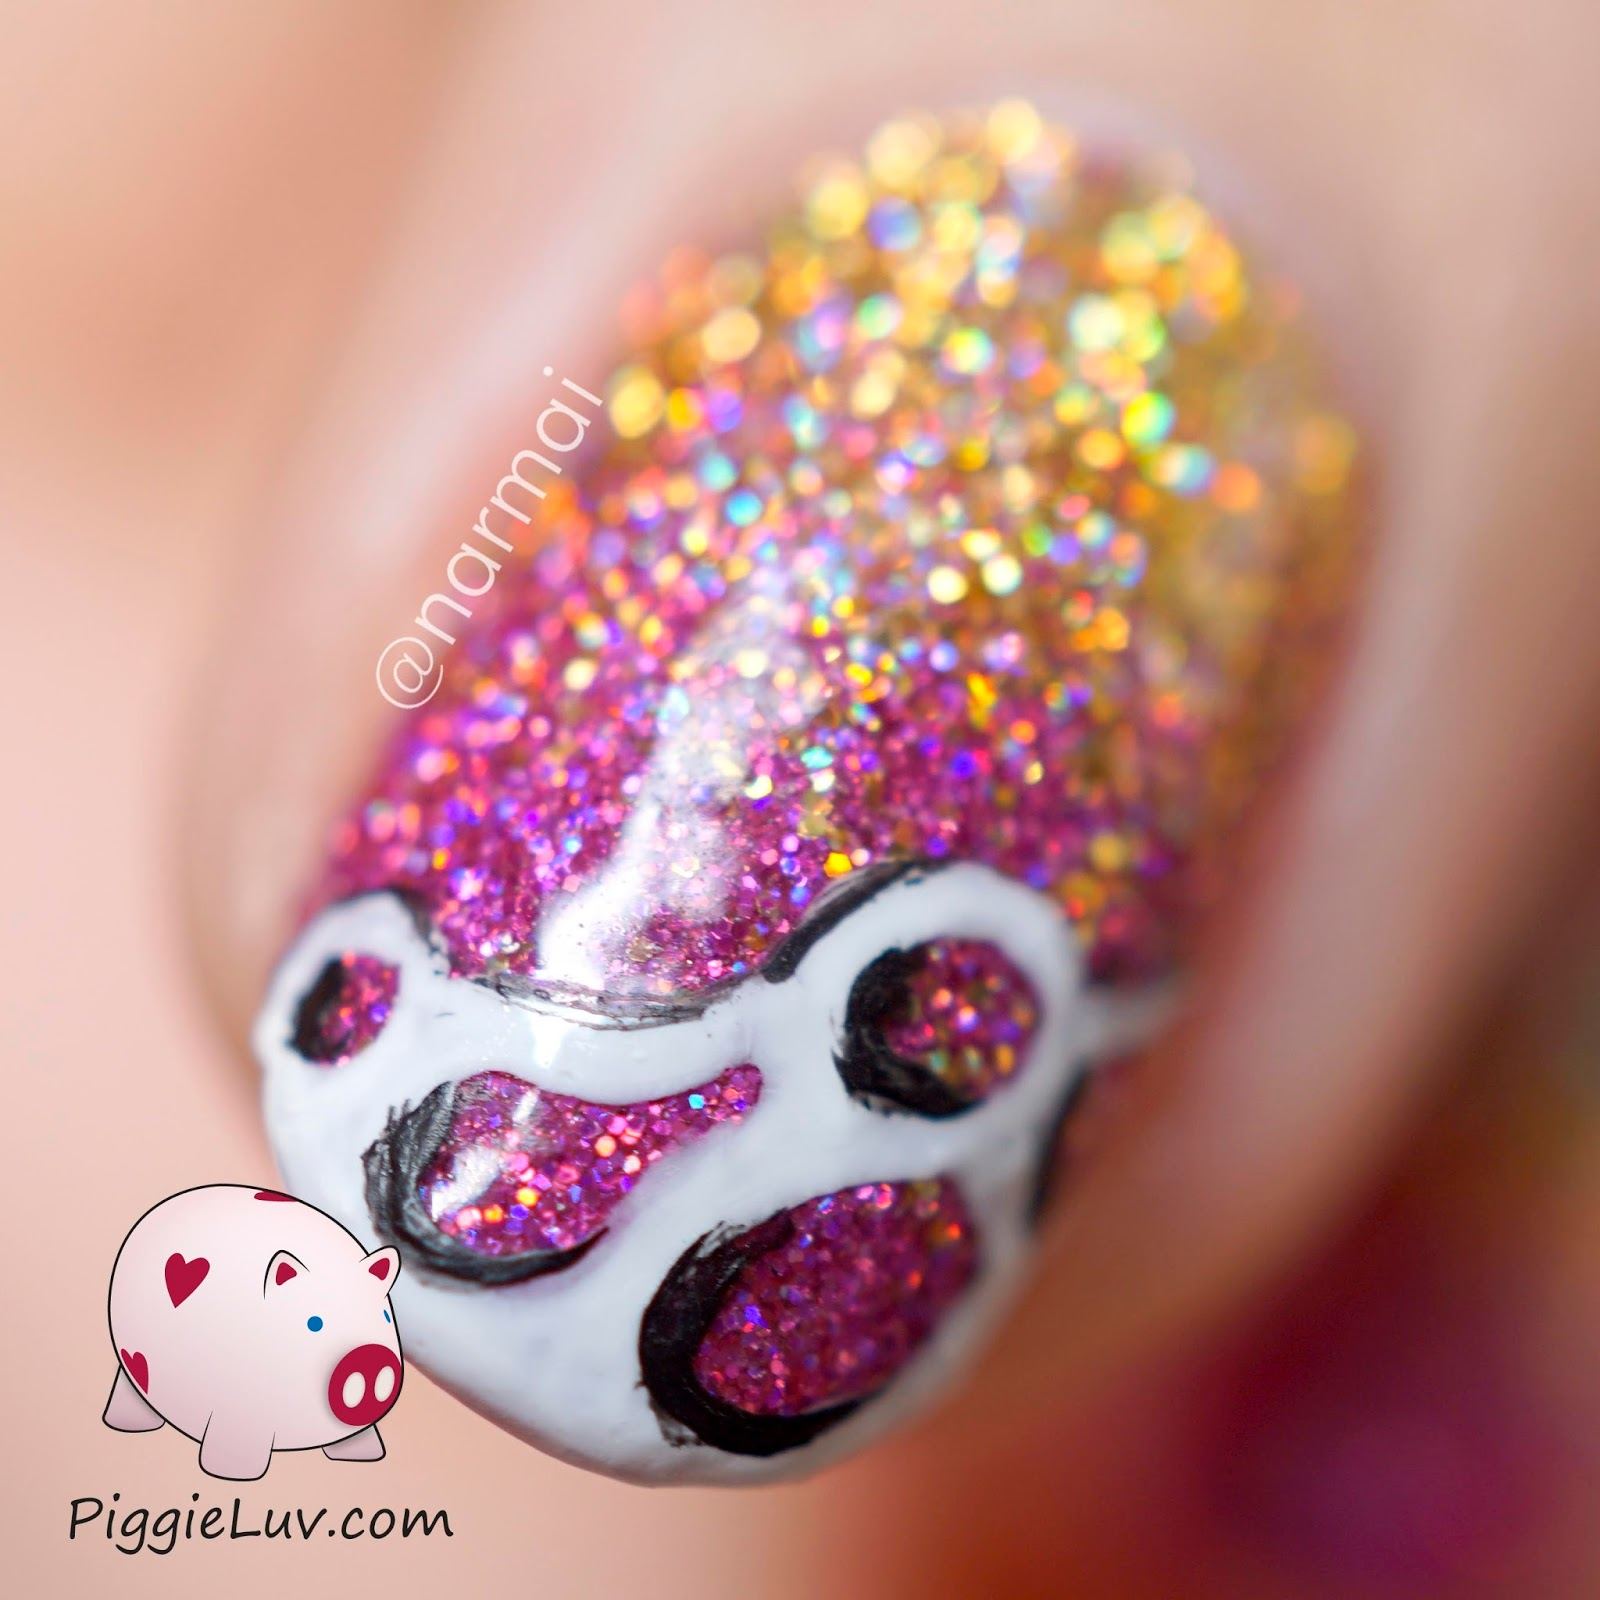 Piggieluv glitter gradient nail art ft girly bits digital nails i painted the design on top with acrylic paint and my basic one gold detail brush from christrio scotland its sort of a doodle and after i did the white prinsesfo Gallery